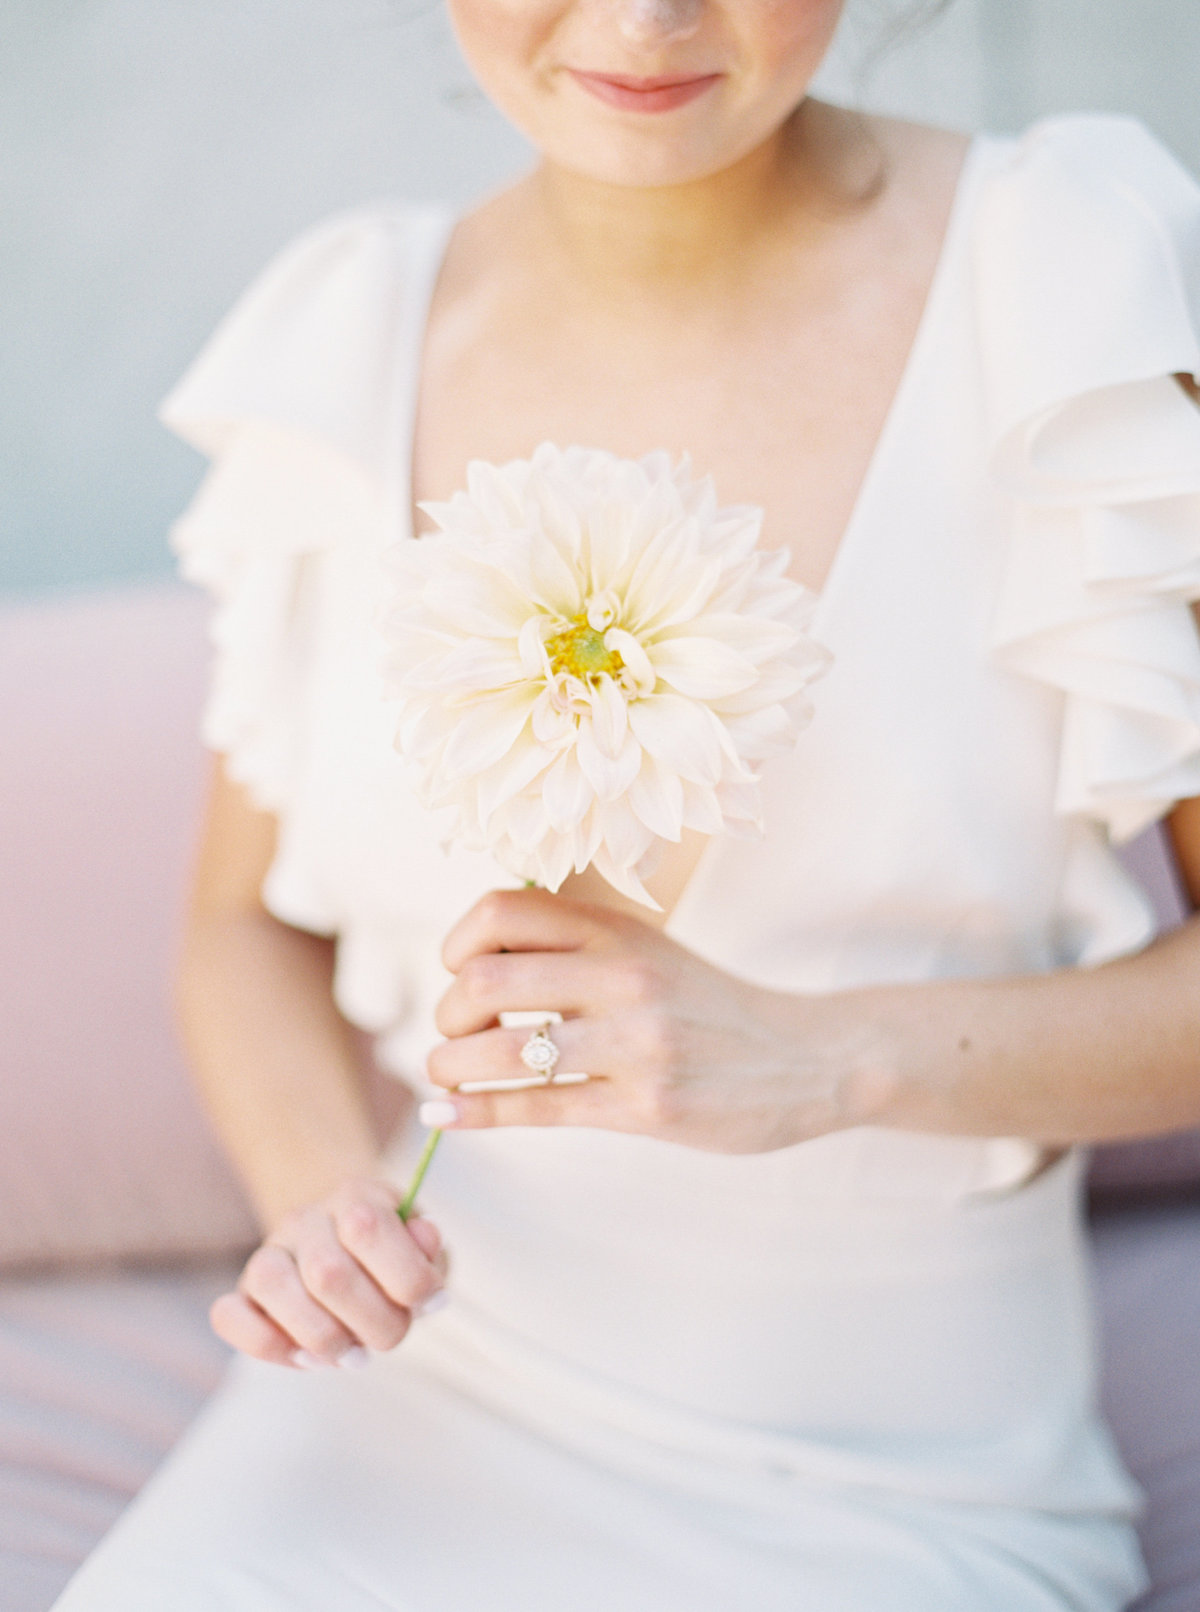 Raela is a Charleston wedding planner with a heart for intentional wedding design.